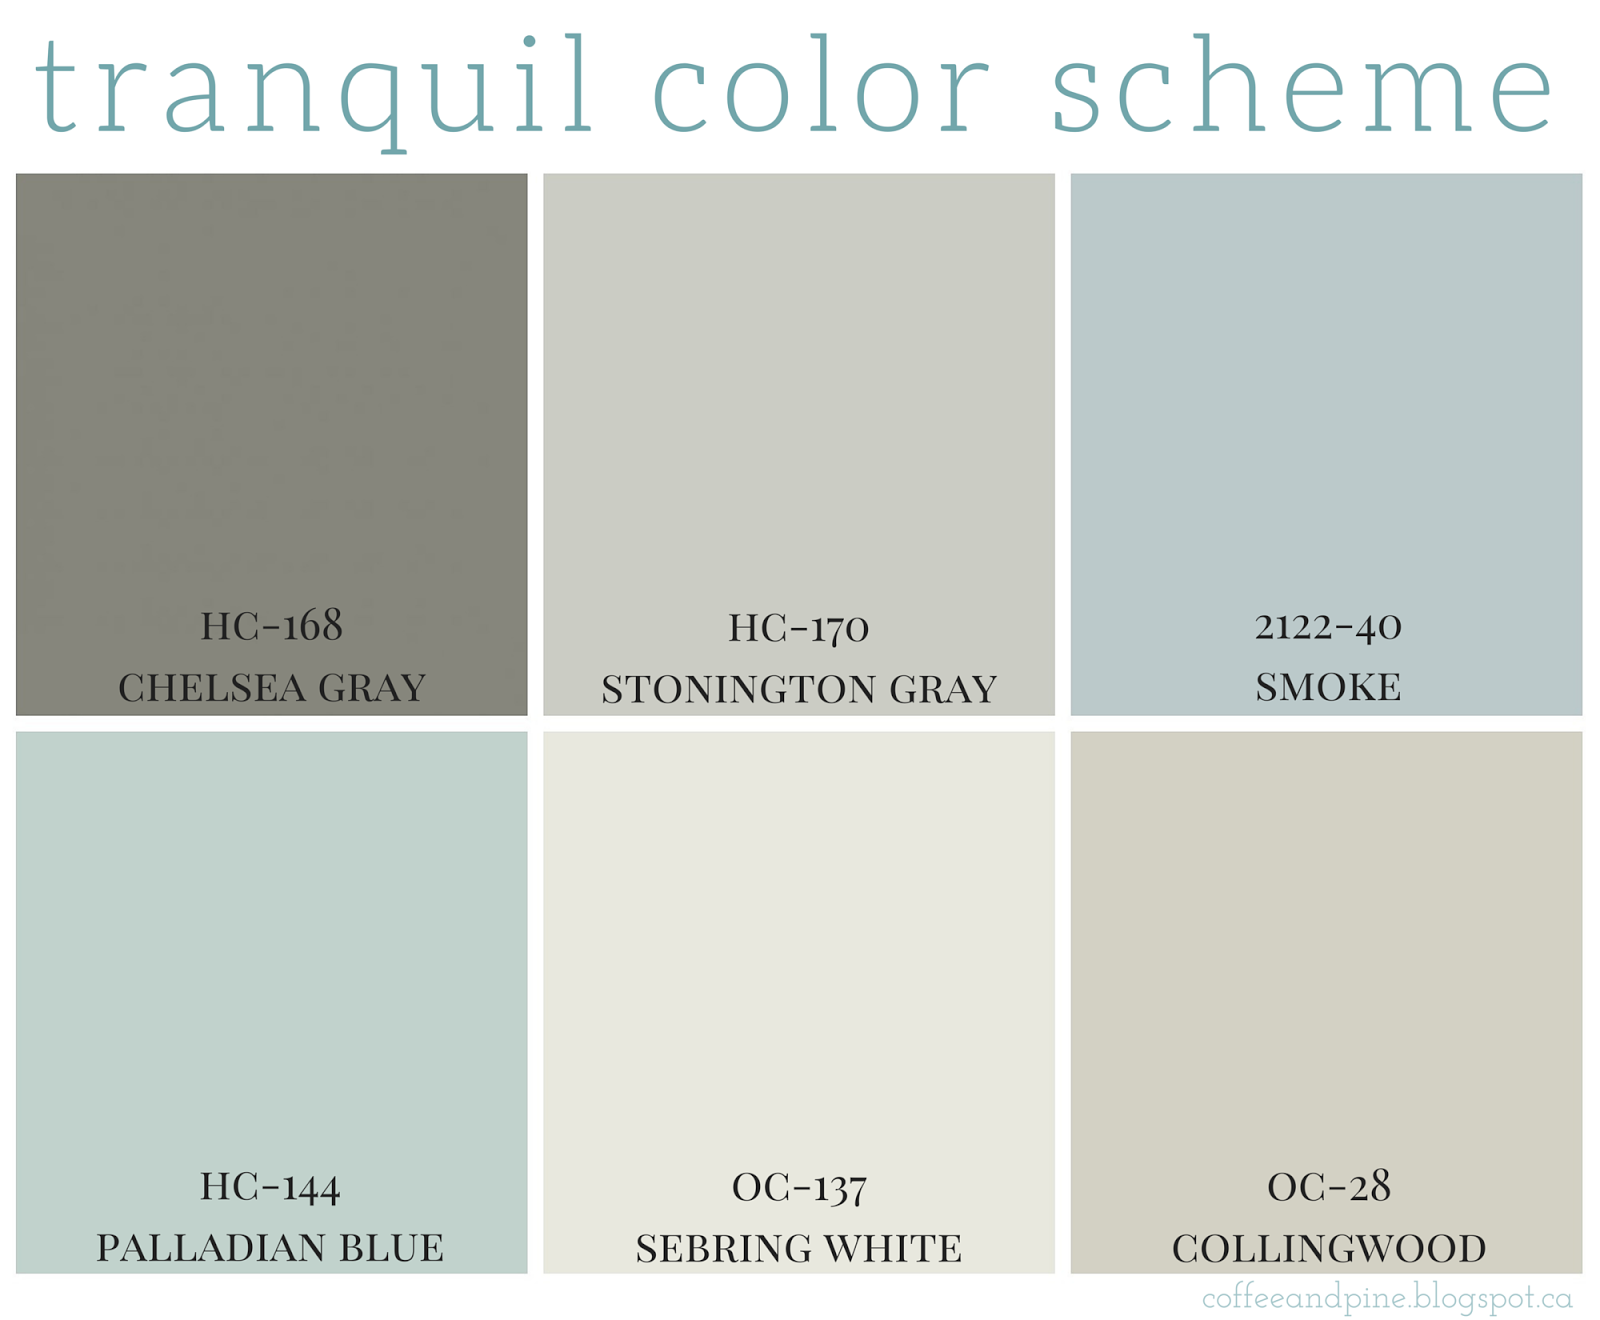 full home color scheme - calming colors are so popular right now